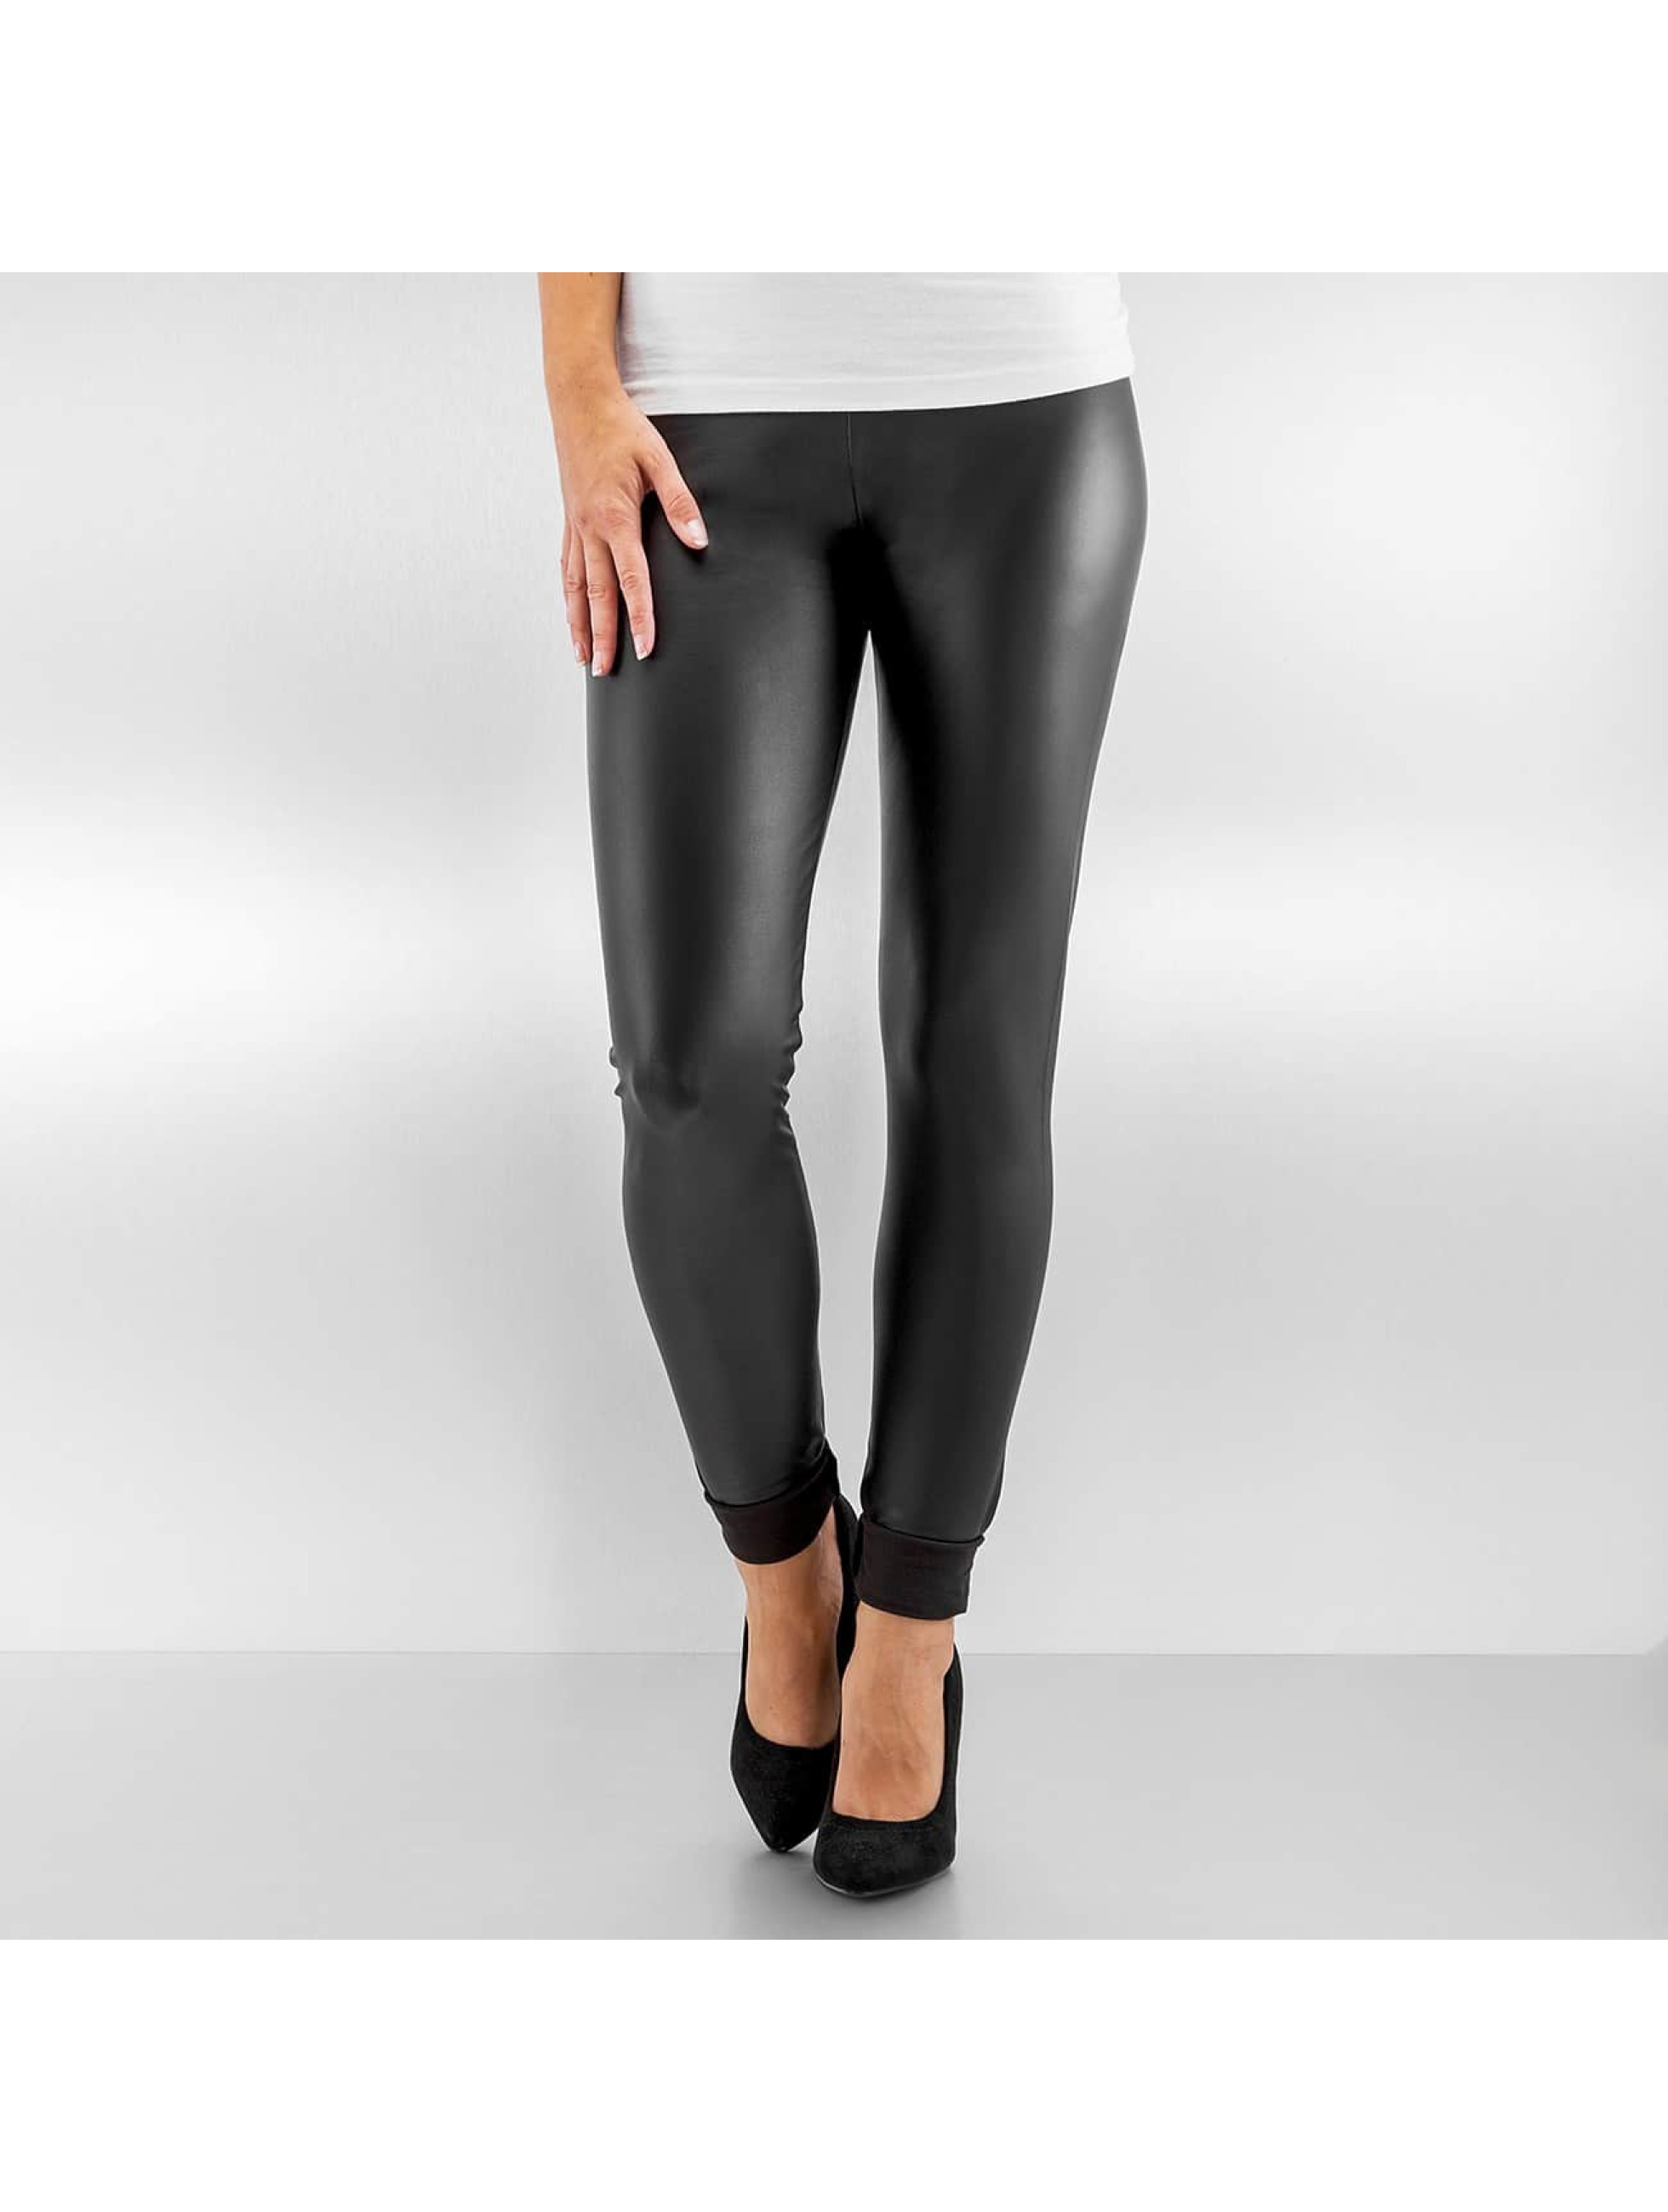 Legging pcNew Shiny in schwarz